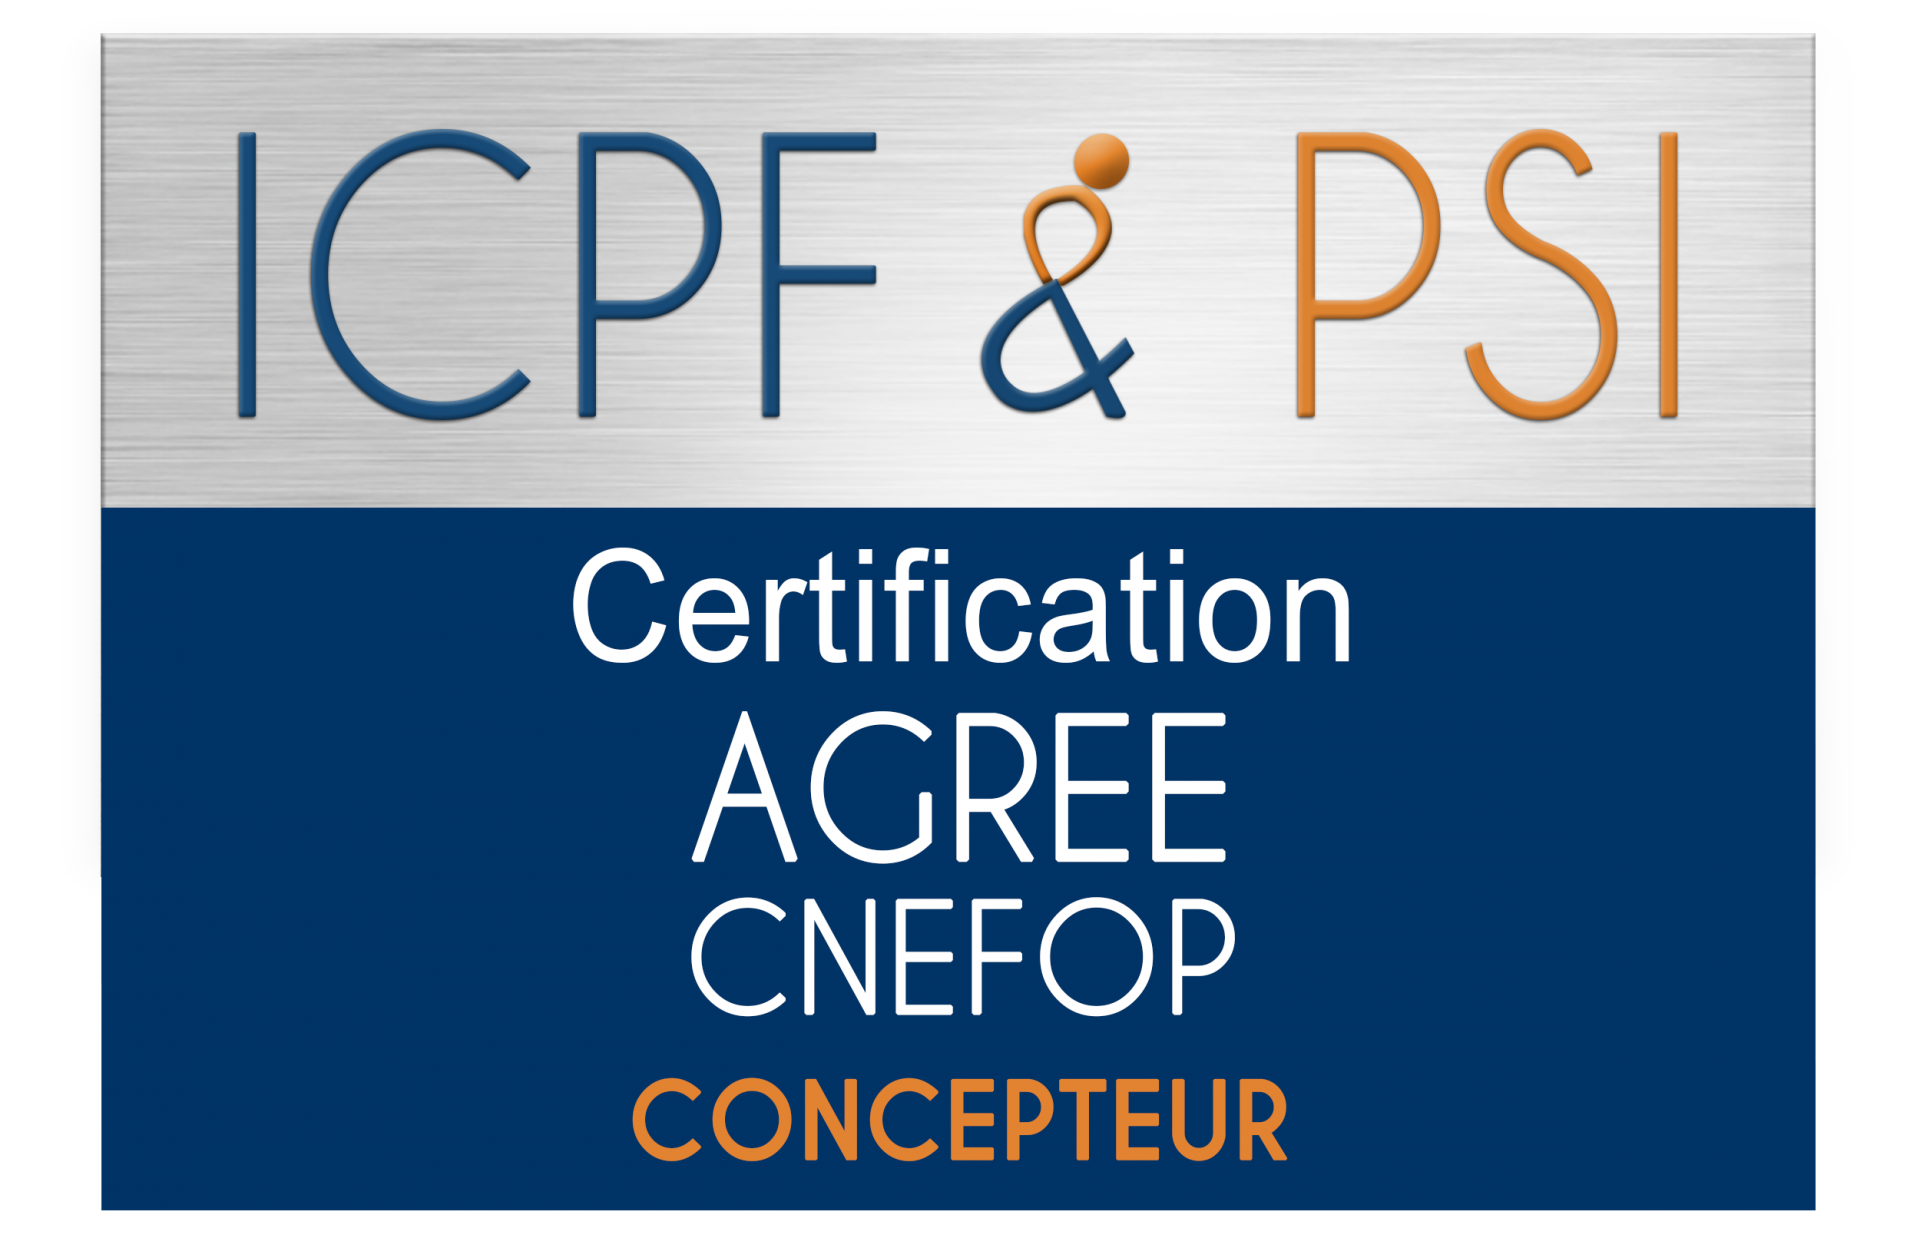 Logo icpf psi agree cnefop concepteur christel ceccotto